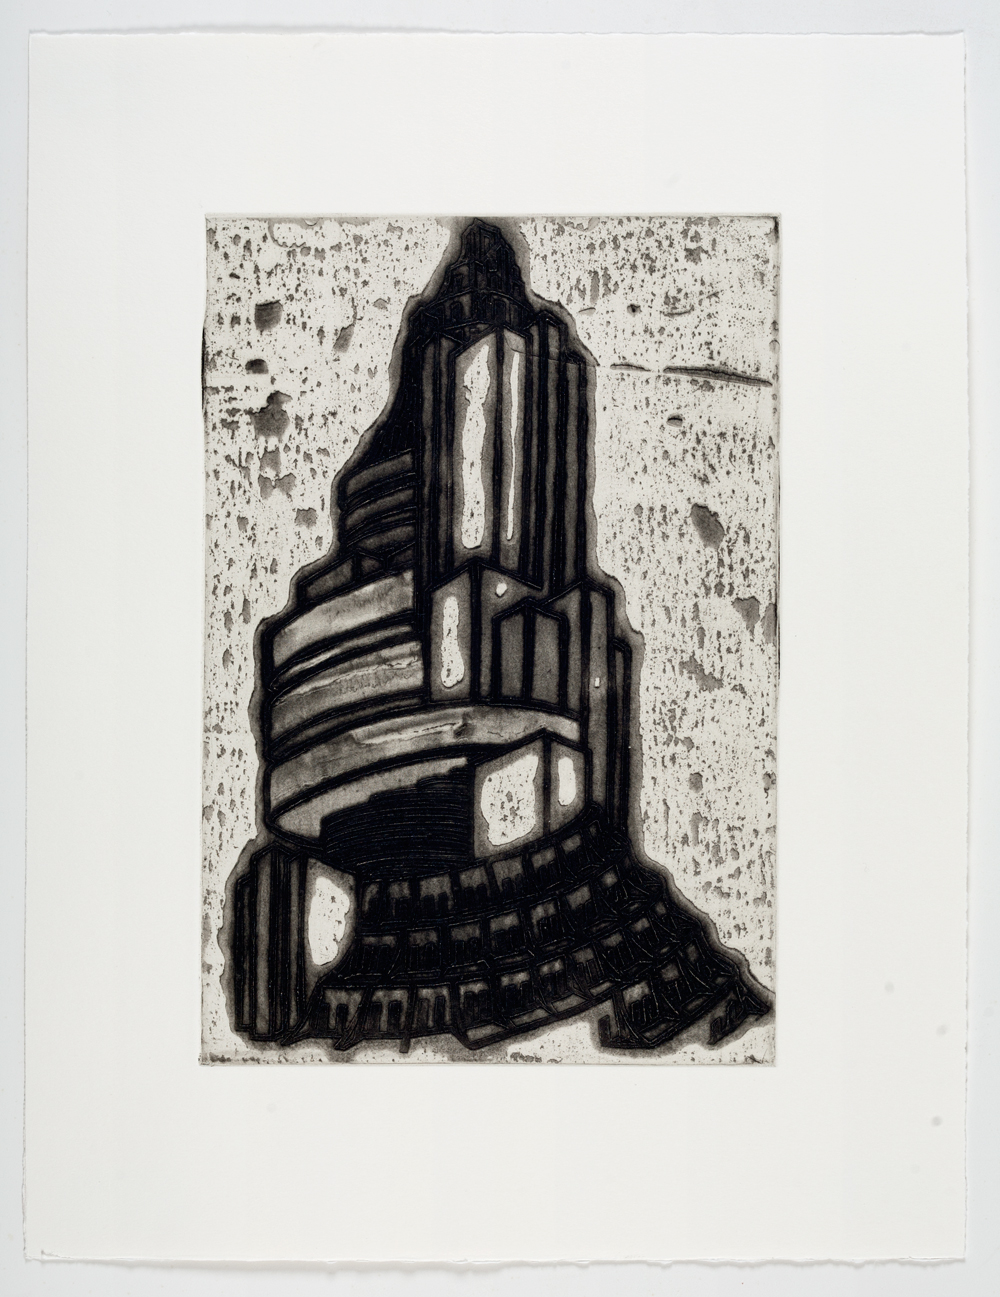 "Ideal Structures for a Dubious Future (Spiral Tower)  2012; Explosive intaglio on paper; 16 3/4"" x 12""; Self published; Edition of 12"